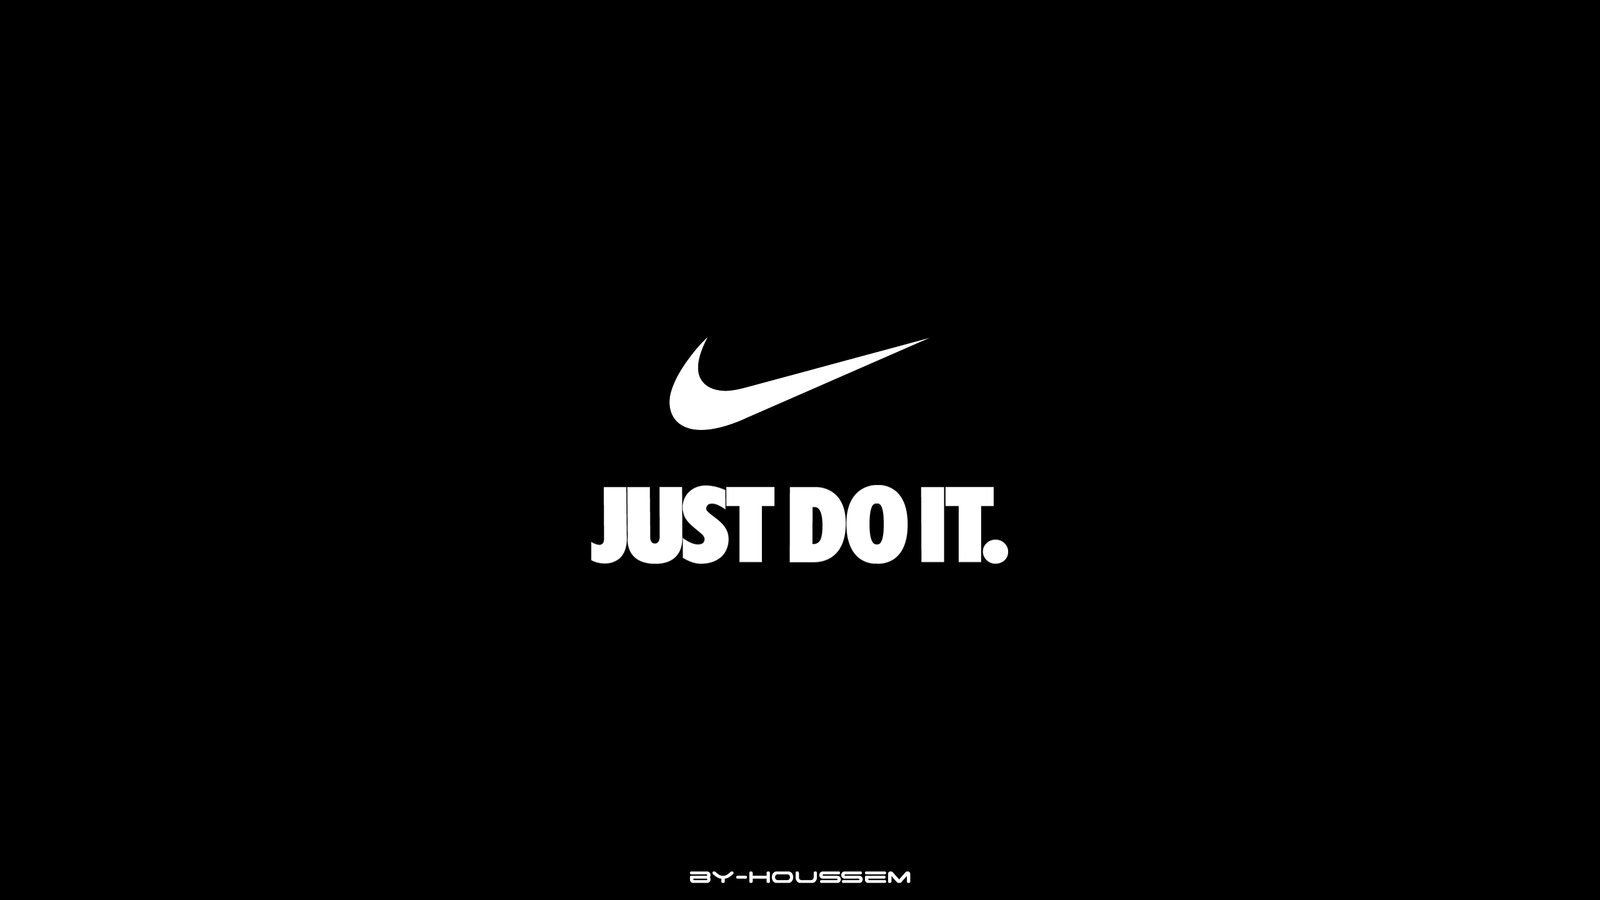 Nike Wallpaper Just Do It Just Do It Wallpapers Nike Just Do It Wallpapers Cool Nike Wallpapers